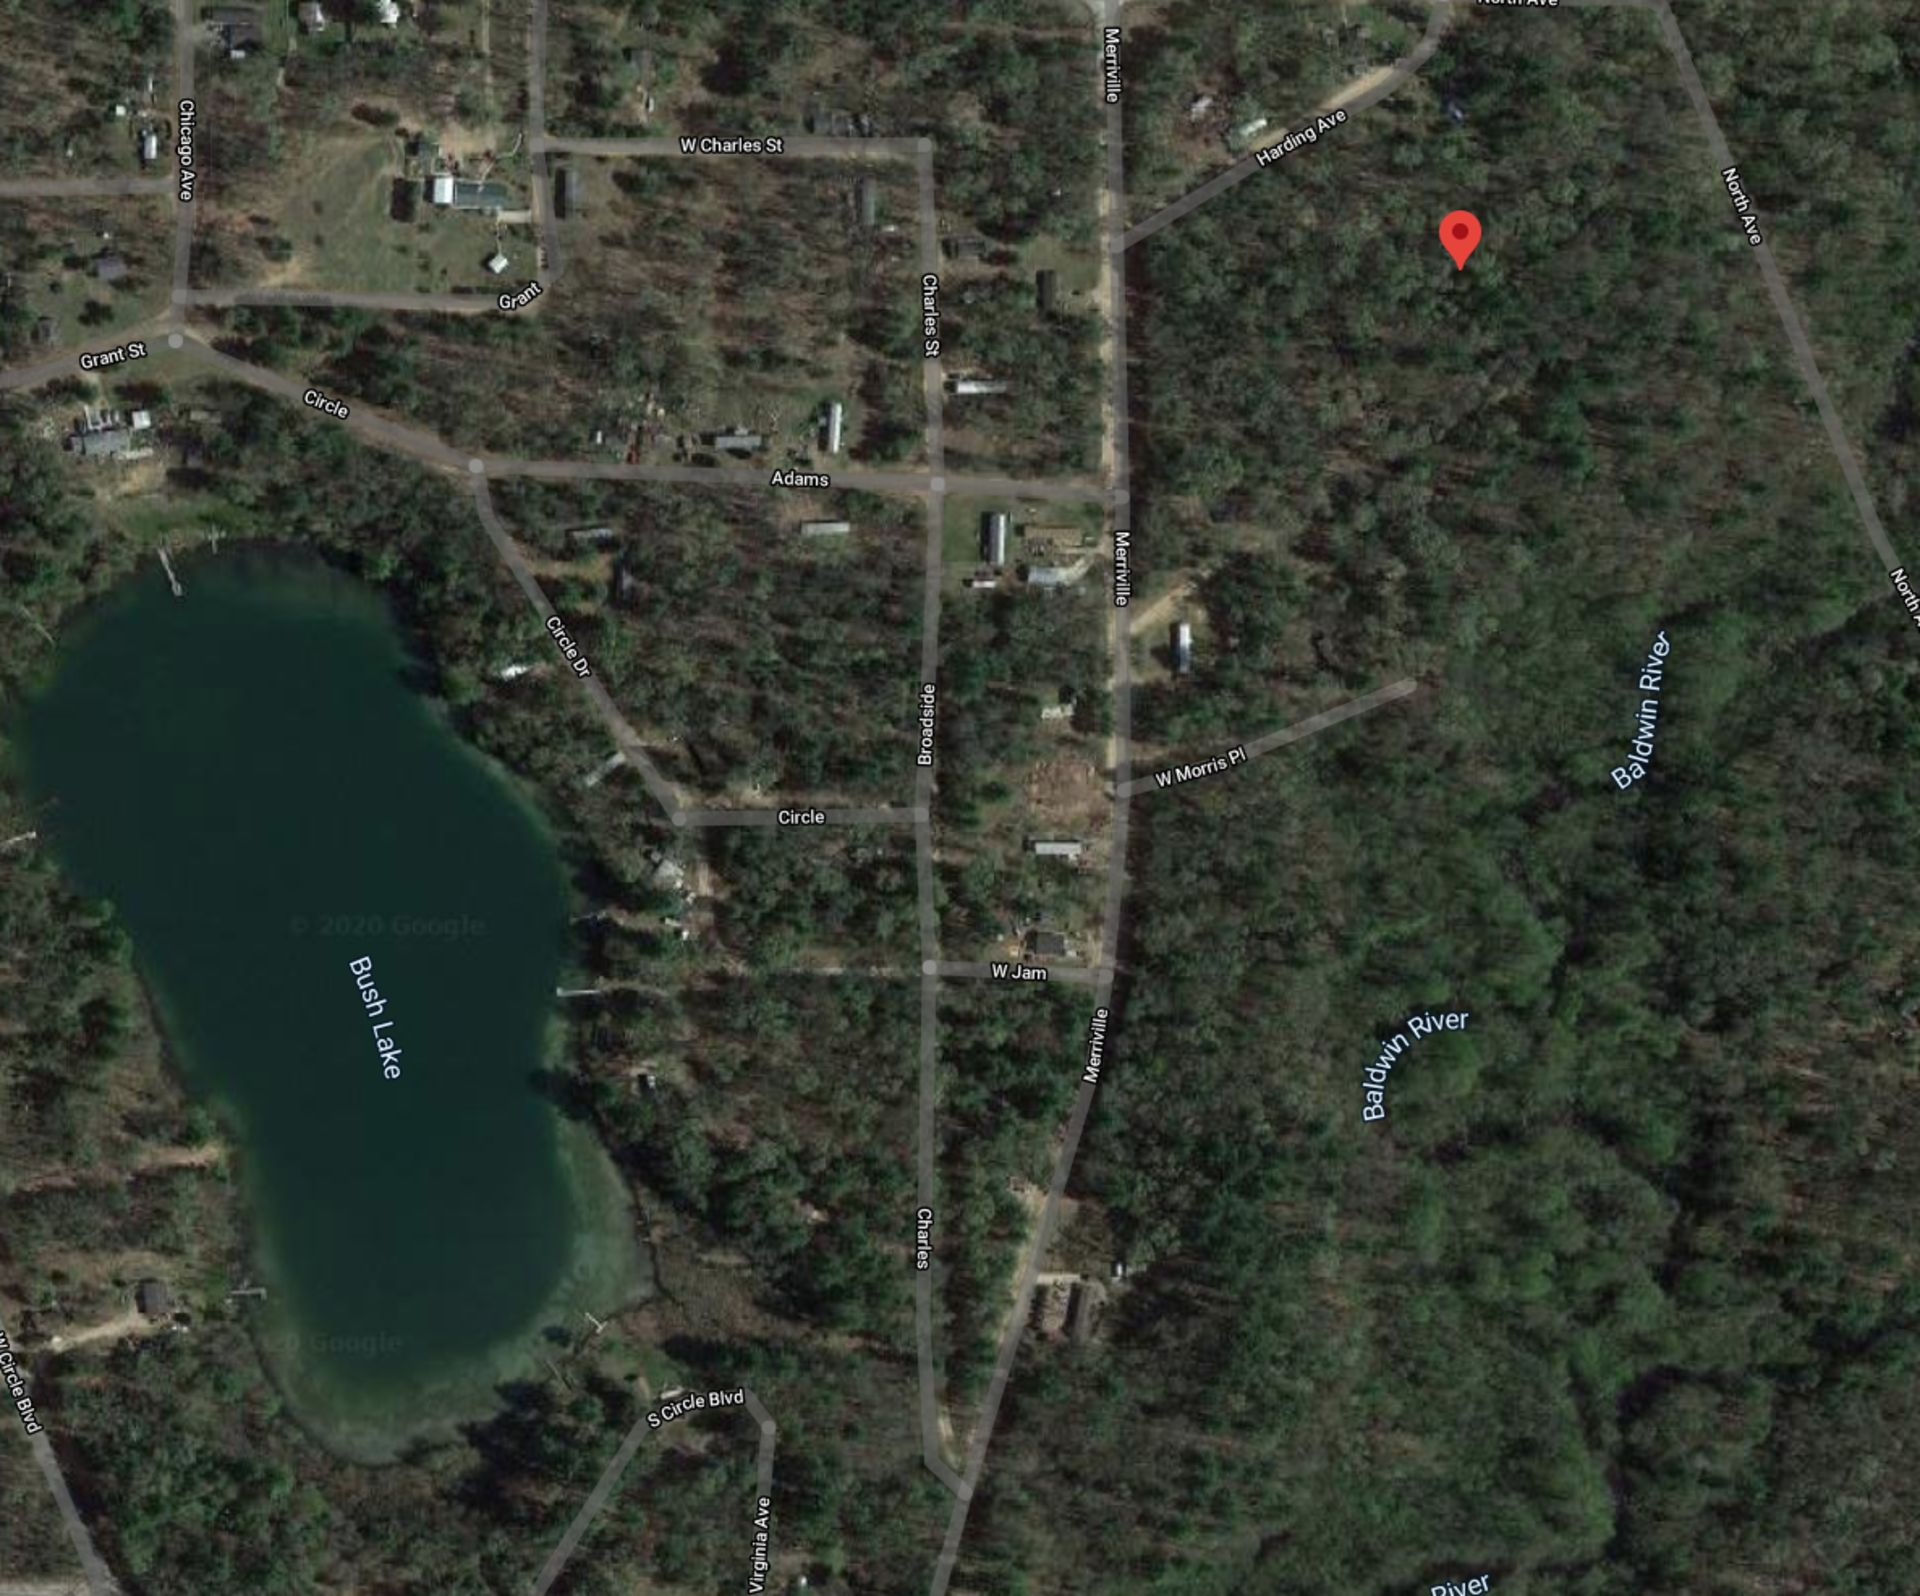 Own Land in Lake County. Michigan's Recreational Outdoor Paradise! - Image 5 of 6